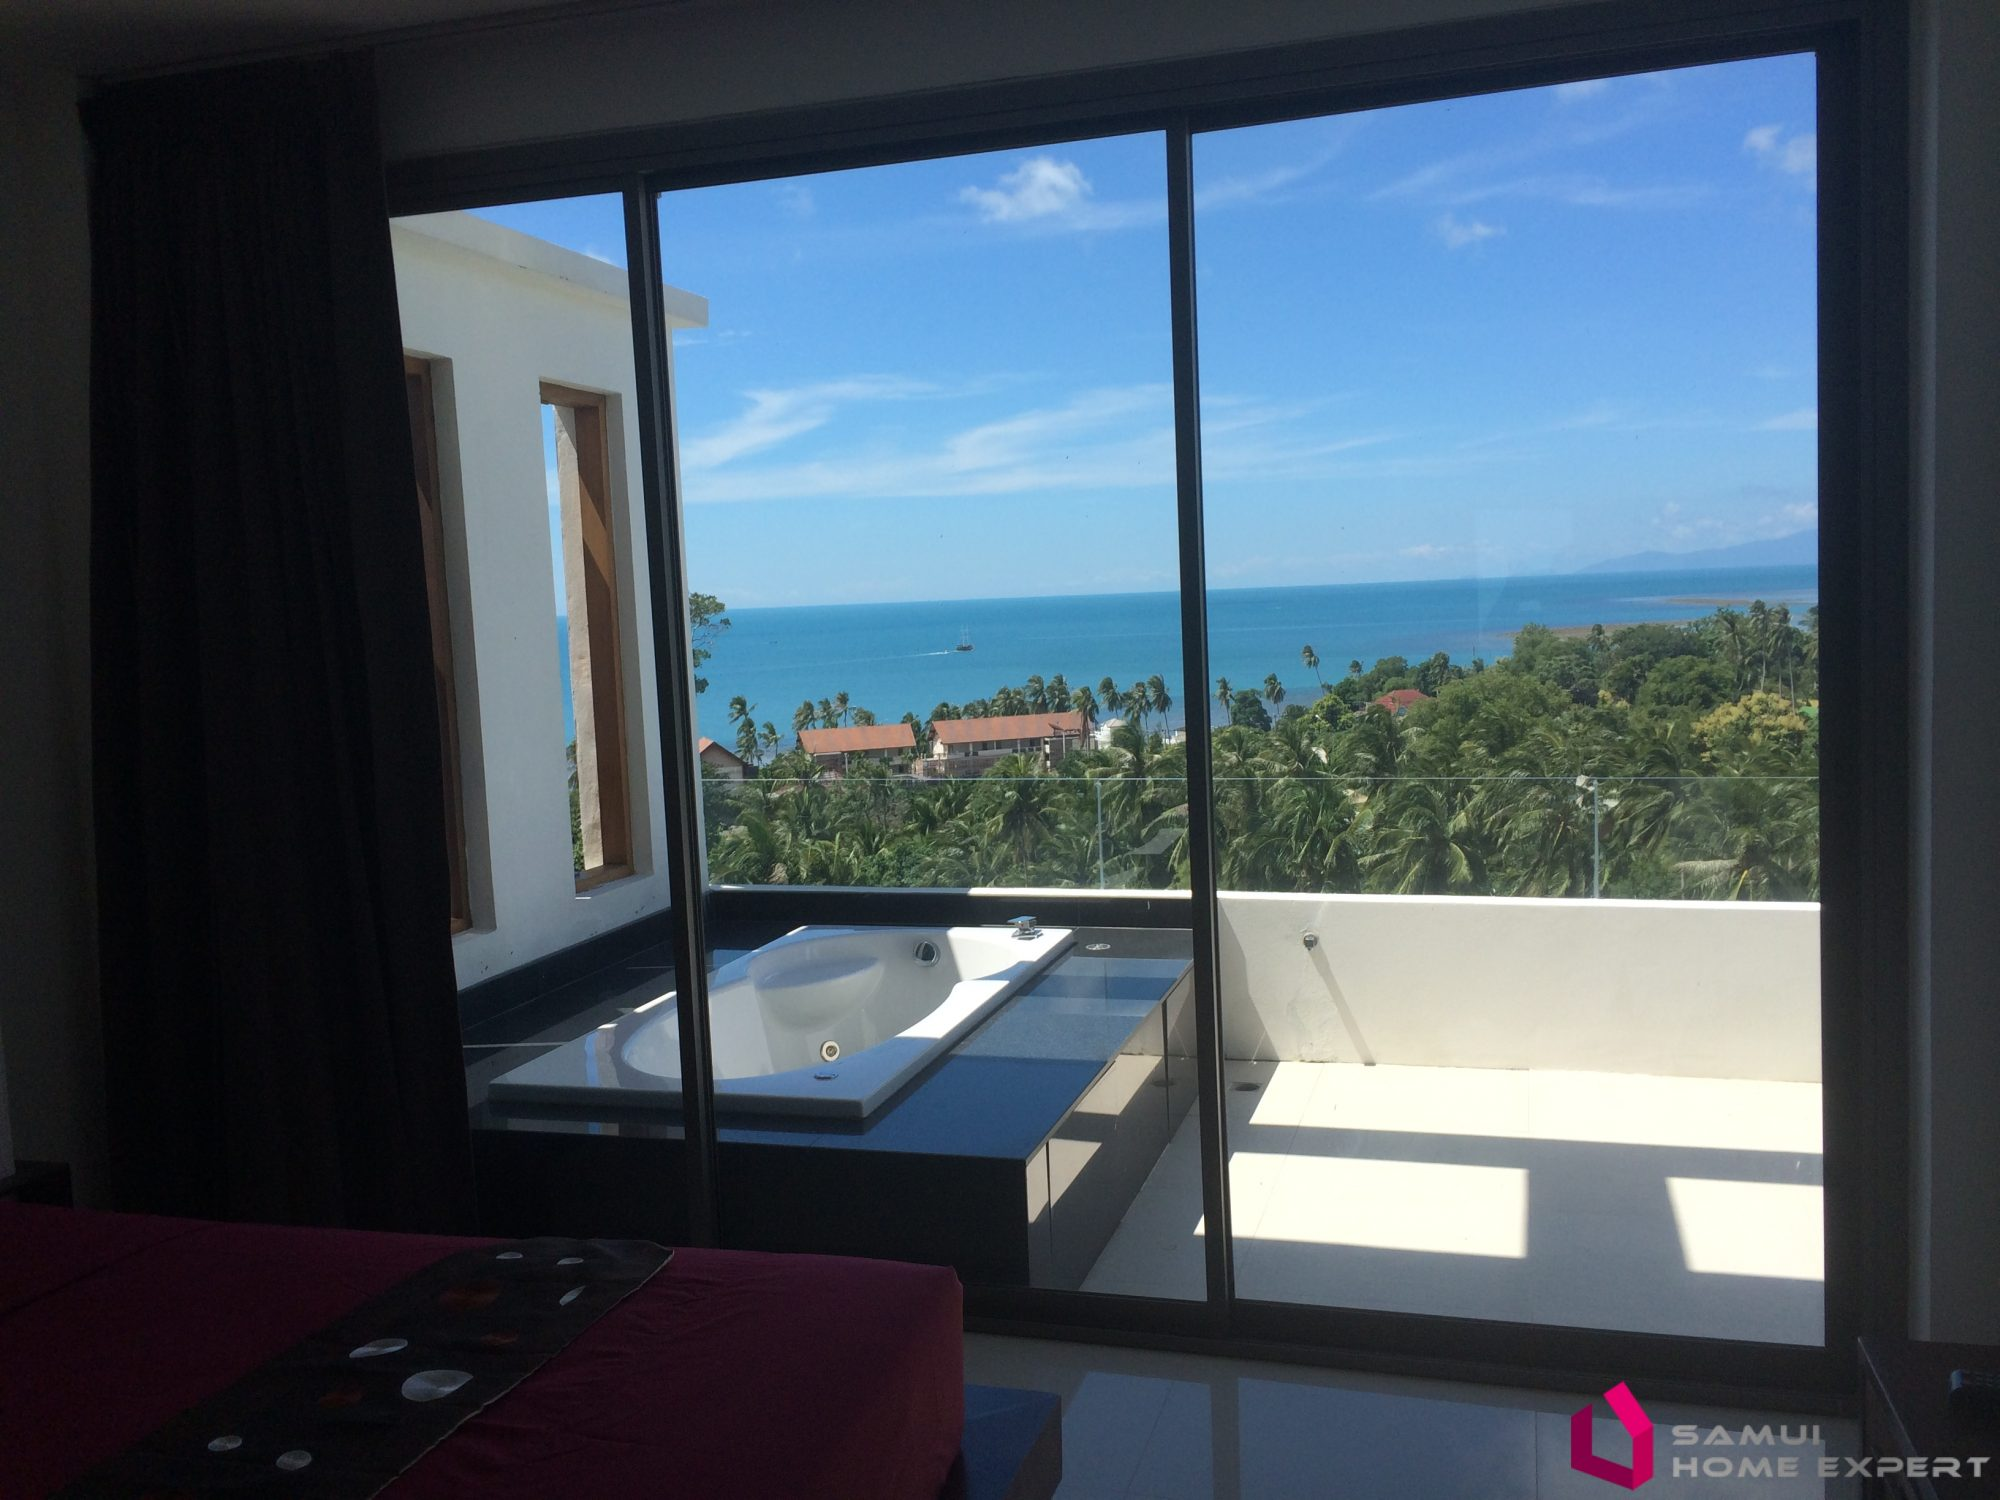 Apartment with sea view and jacuzzi | Samui Home Expert